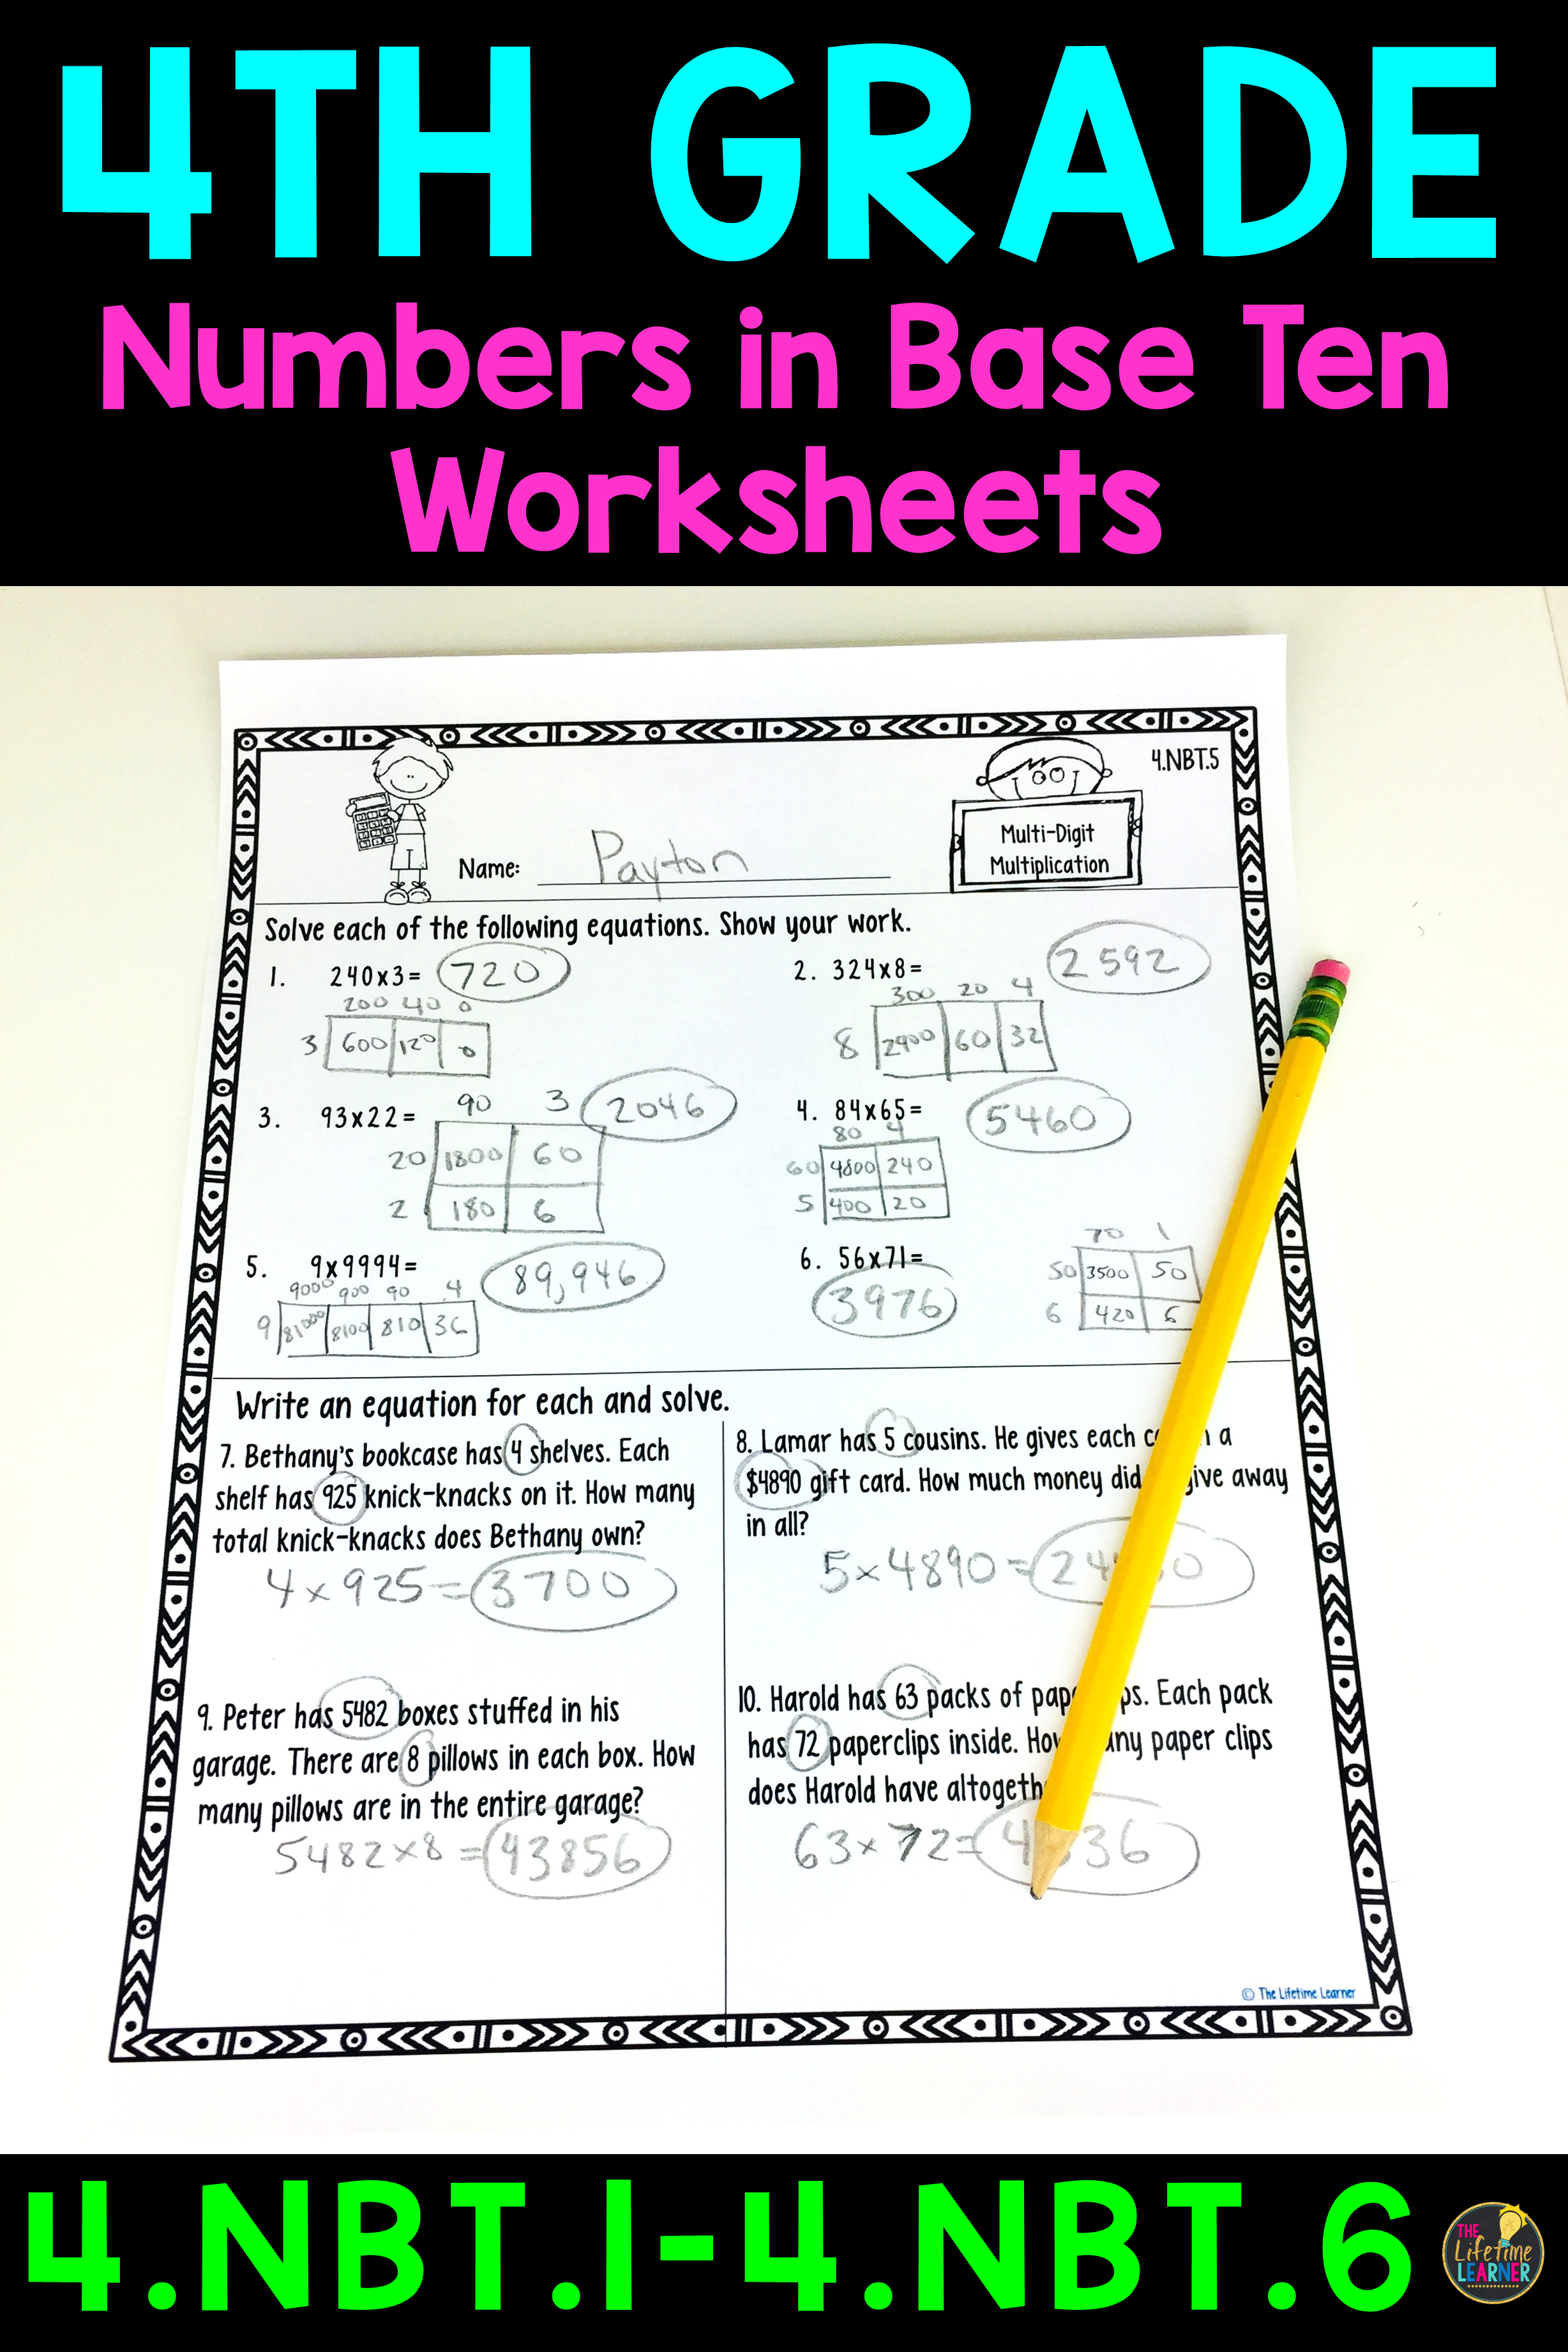 4th Grade Numbers In Base Ten Worksheets Fourth Grade Pinterest 4.NBT.4 Worksheets App These Numbers In Base Ten Worksheets Are Perfect For 4th Graders They Align With Common Core Standards 4 Nbt 1, 4 Nbt 2, 4 Nbt 3, 4 Nbt 4, 4 Nbt 5, And 4